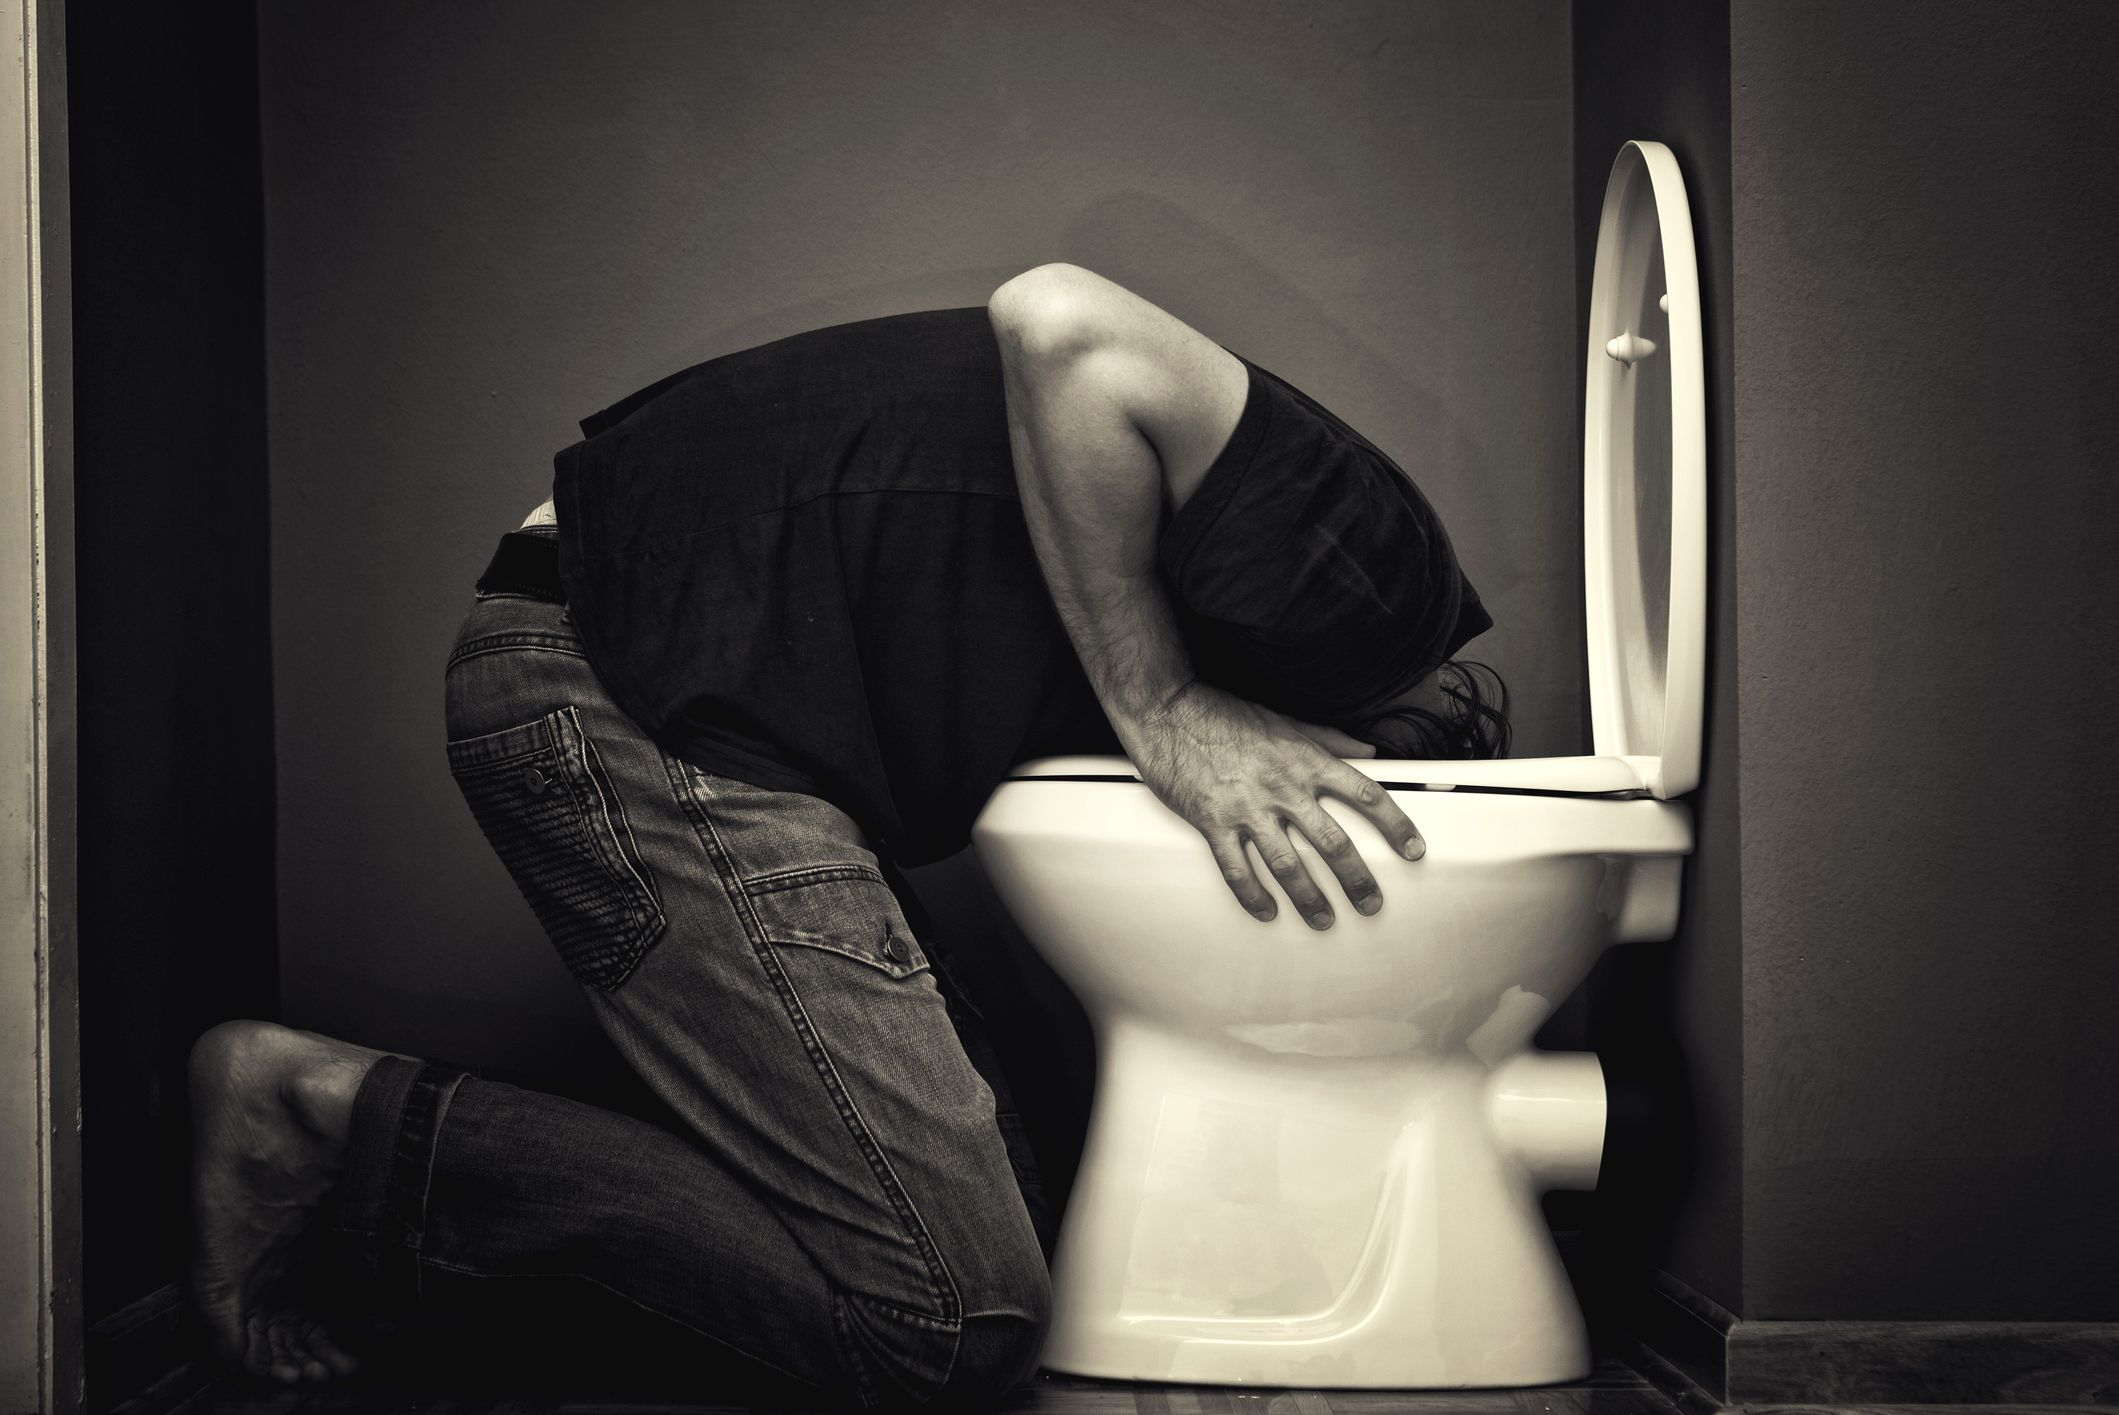 How to avoid vomiting when you are drunk